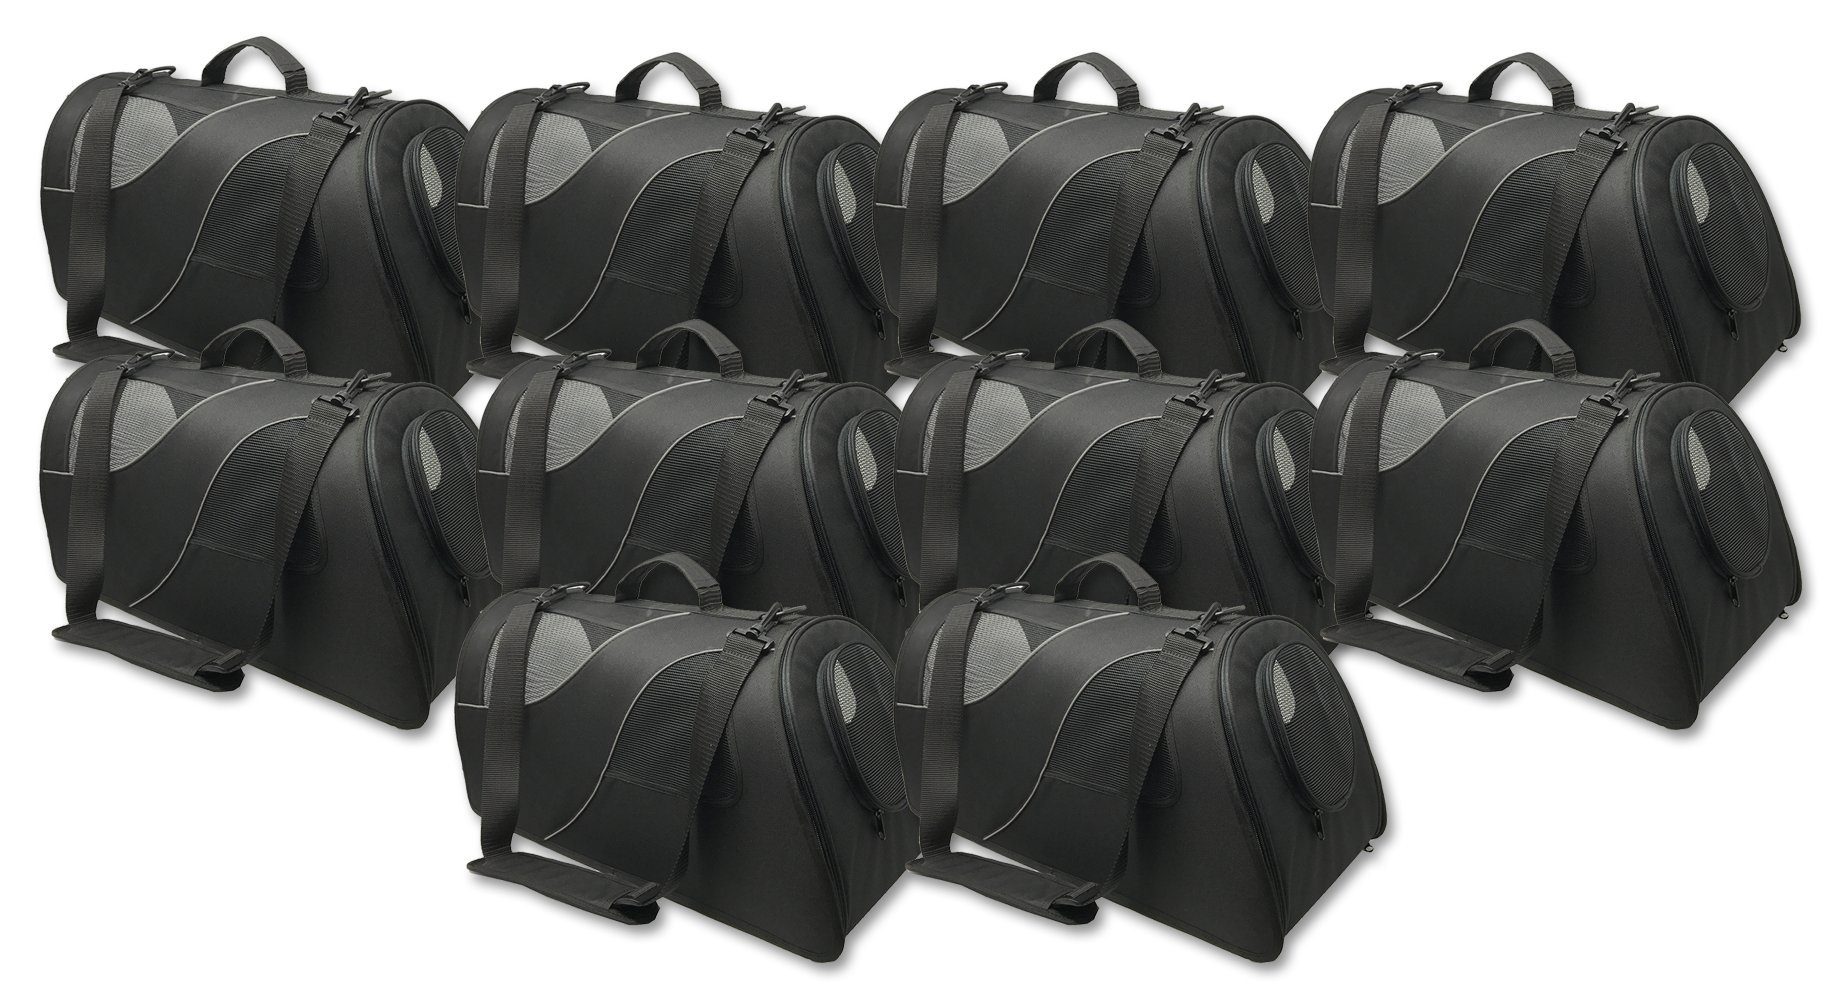 Fuzzy Buddy FB-SS-BL-10 Soft-Sided Pet Carrier for Small Dogs and Cats, Black, 10-Pack